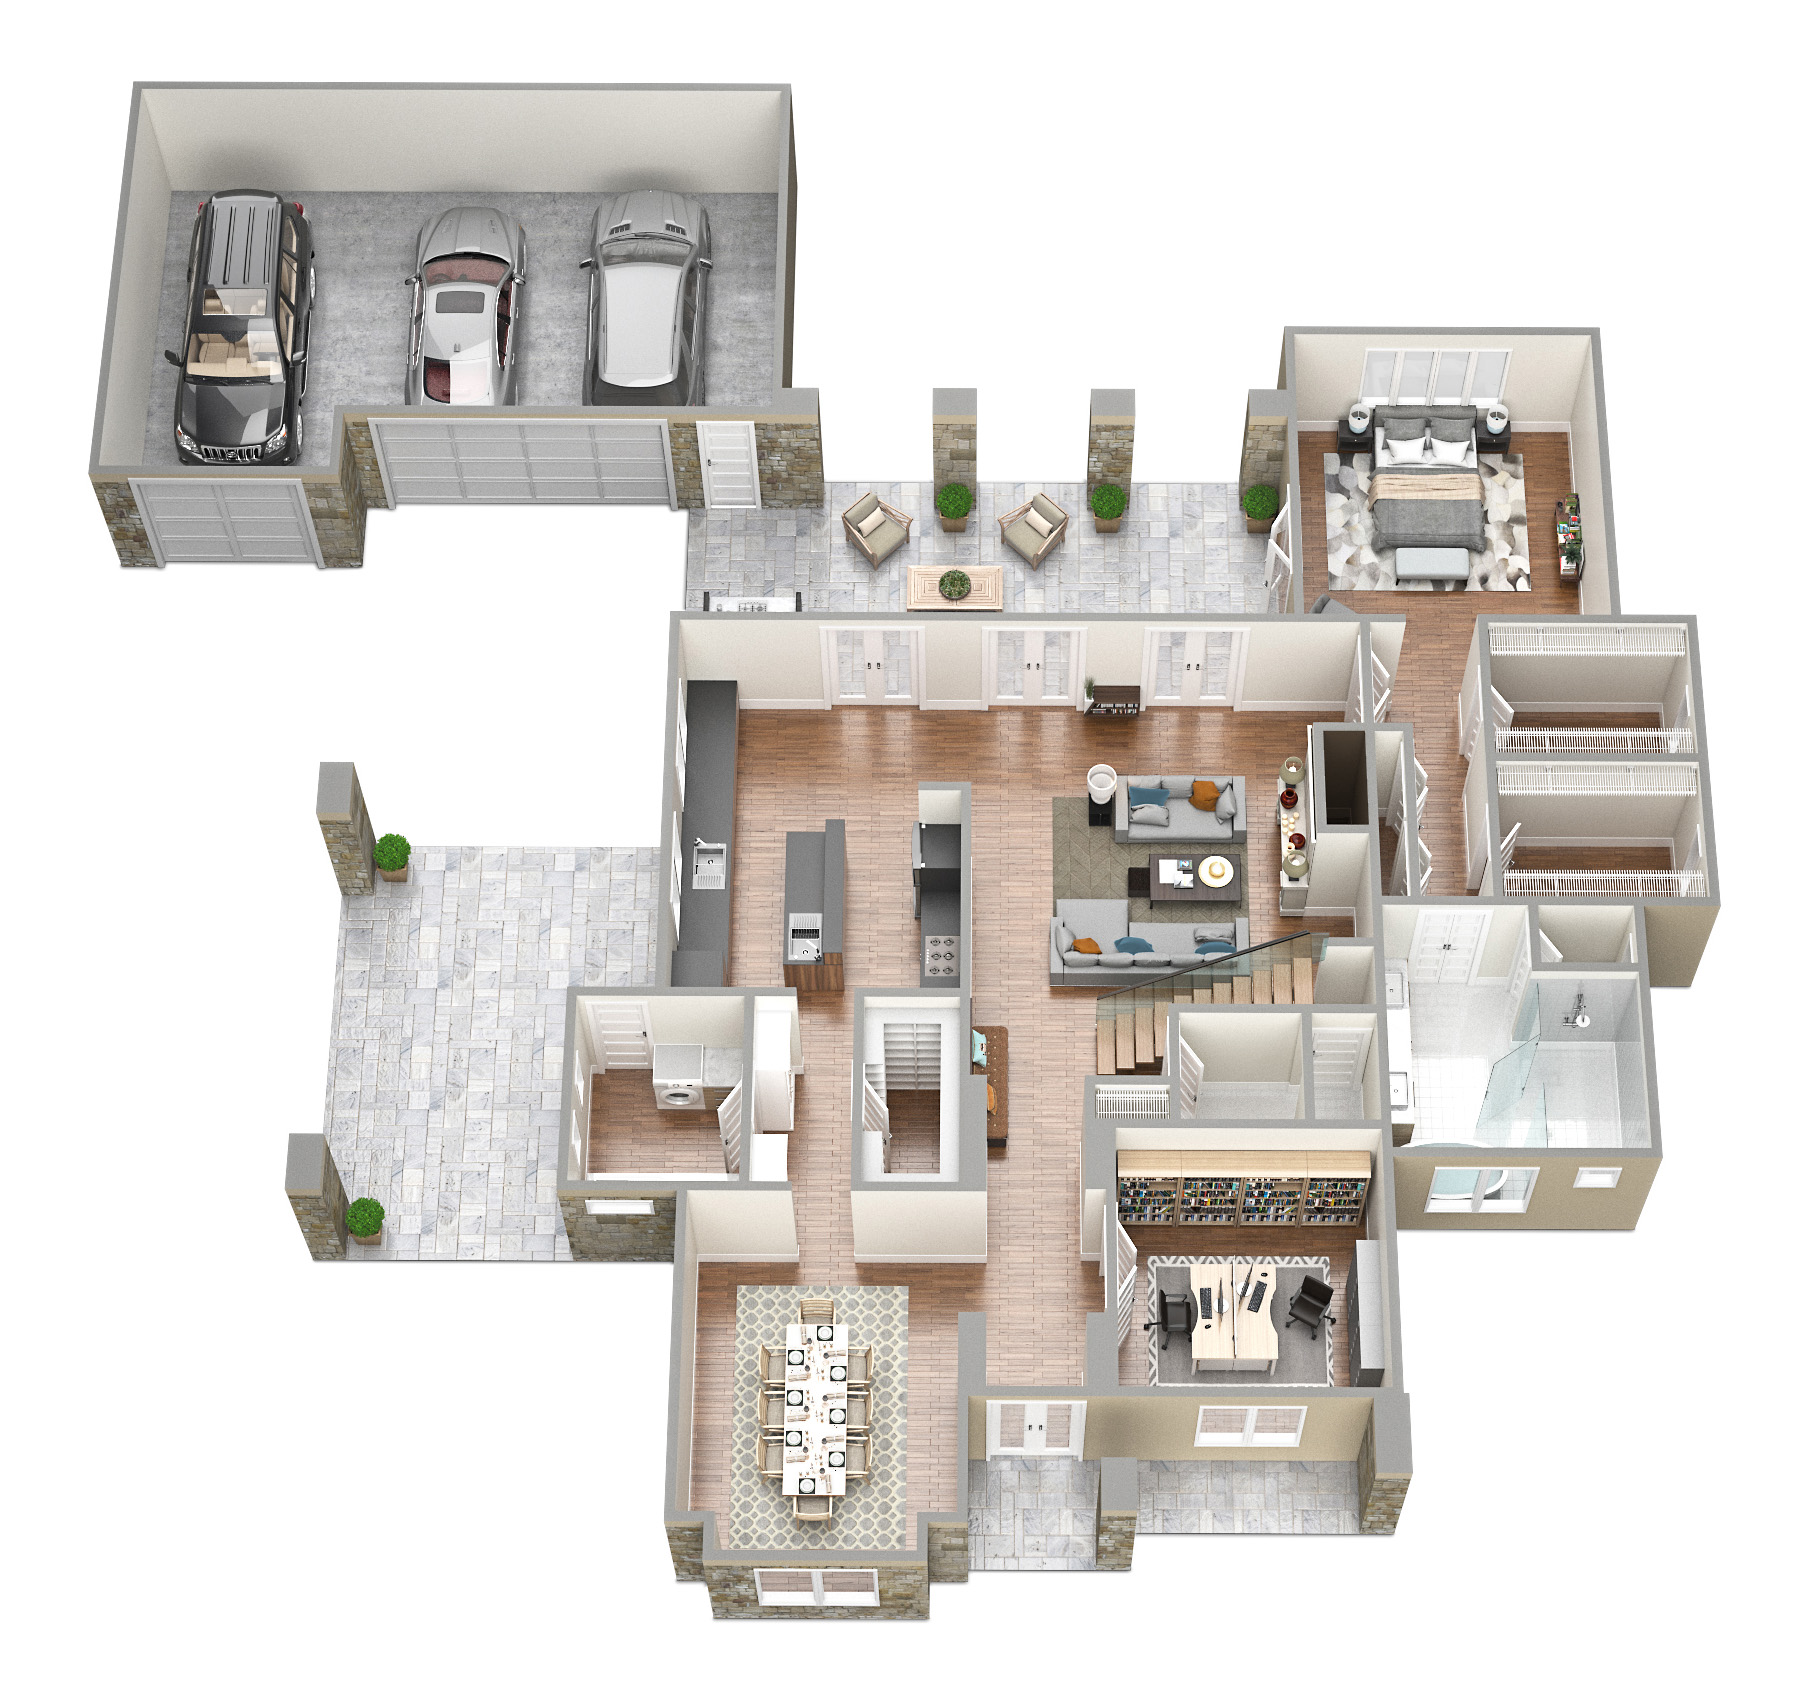 SawyerSound Sawyer 1st floor 3D floorplan  by Tsymbals